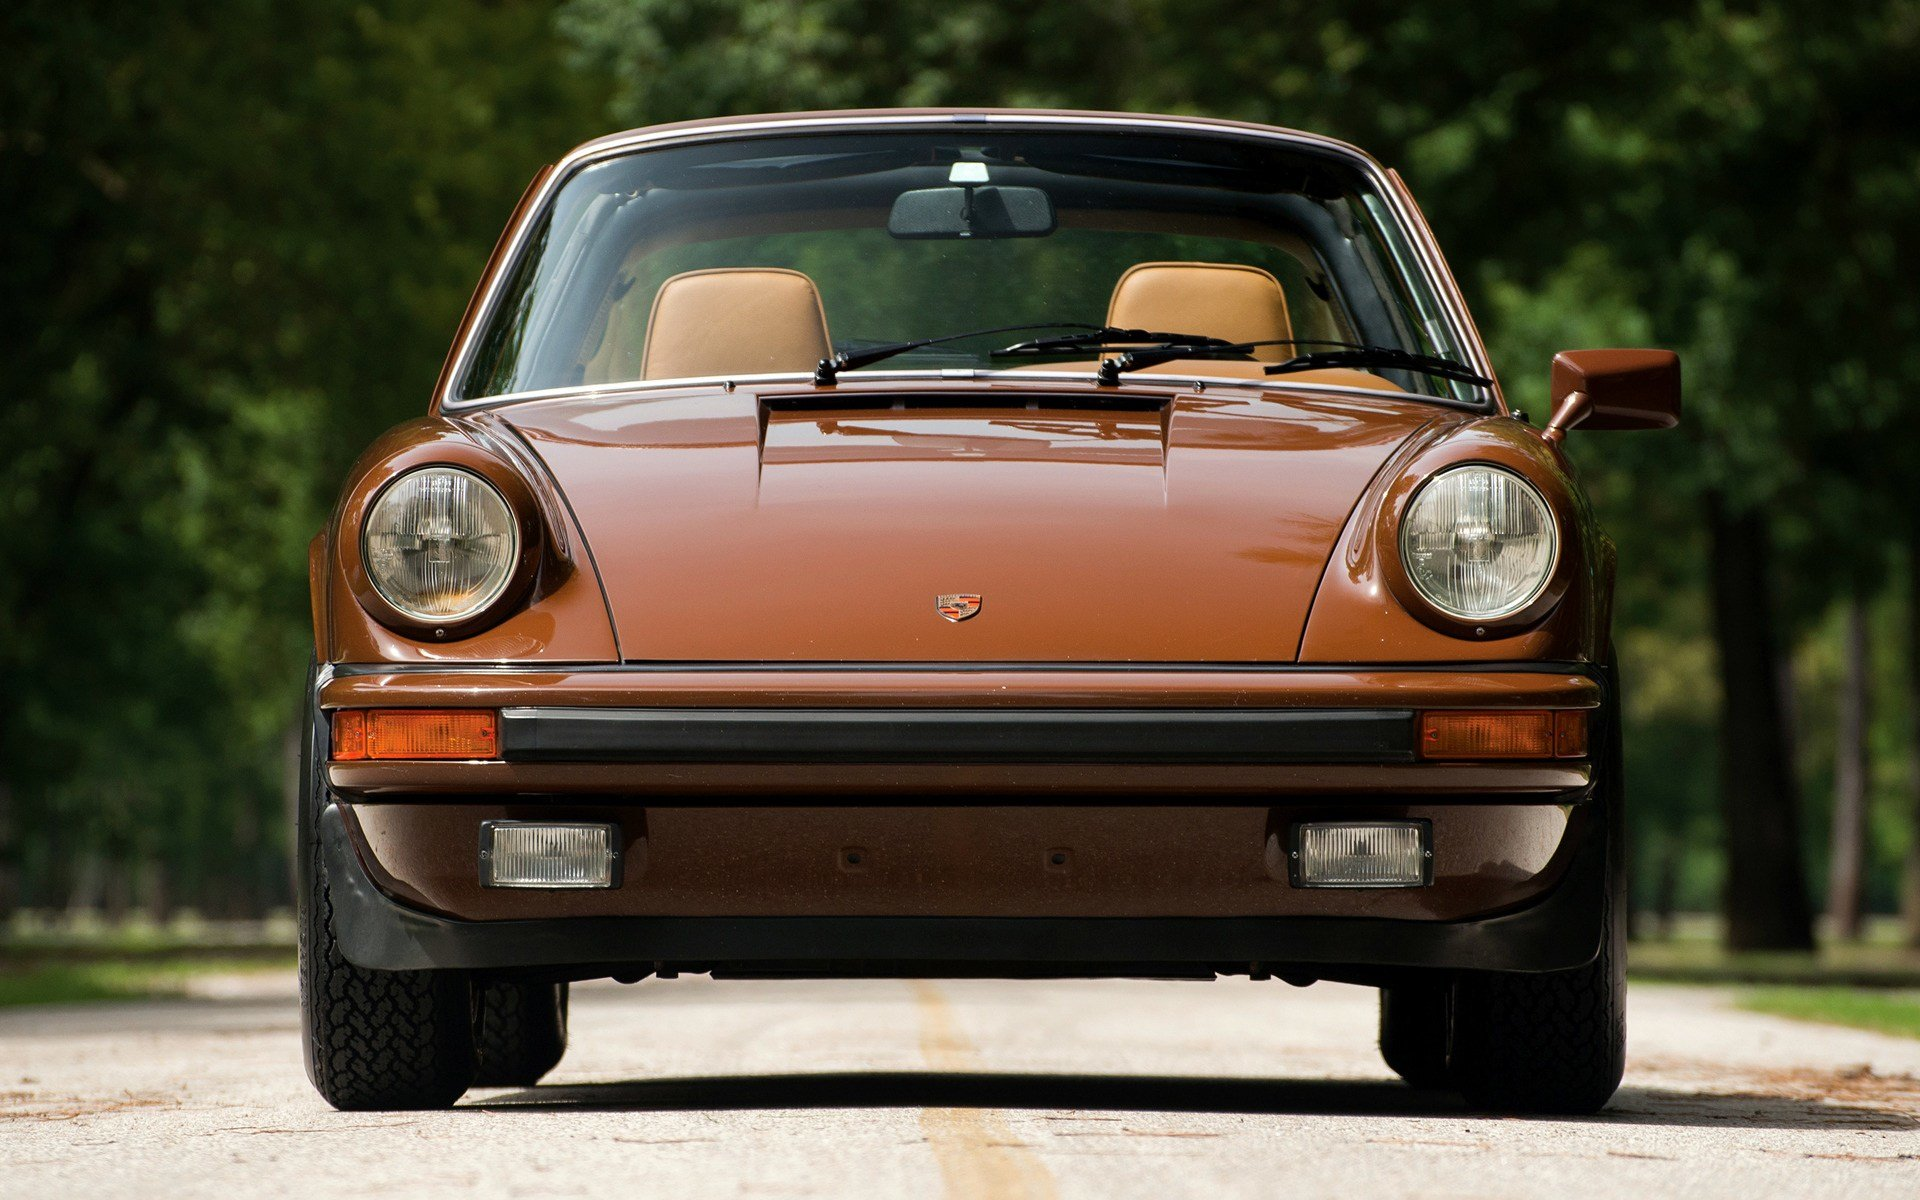 Latest Porsche 911 Carrera Targa With Whale Tail 1975 Us Free Download